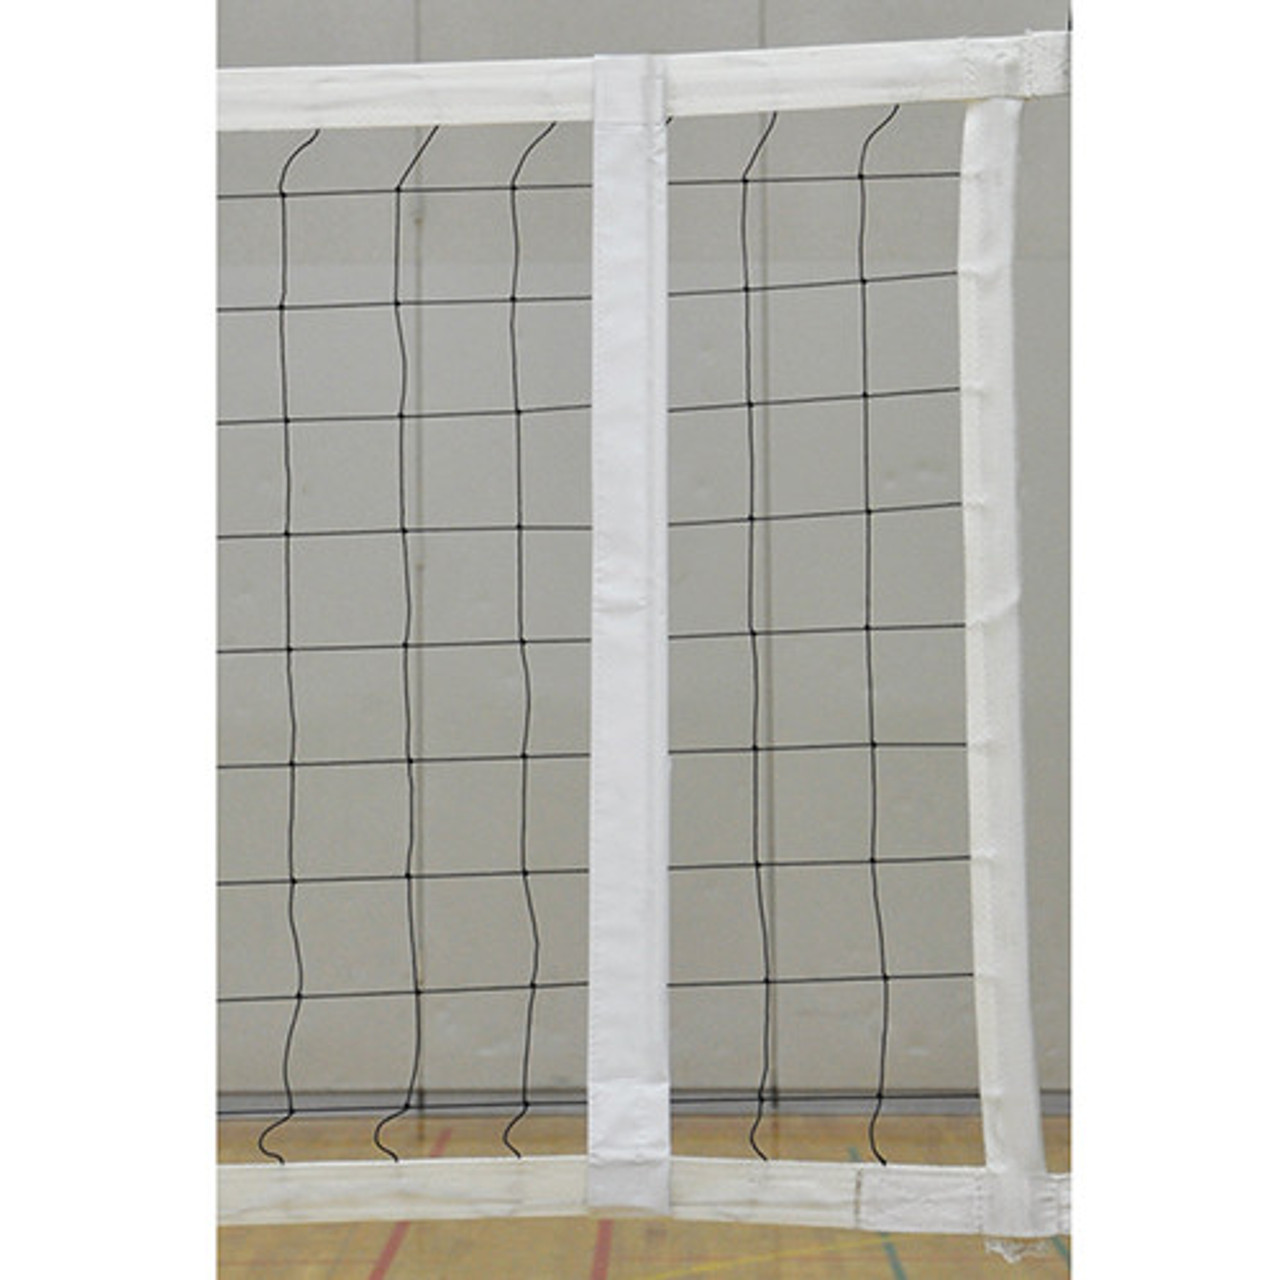 Boundary Tape for Volleyball Nets